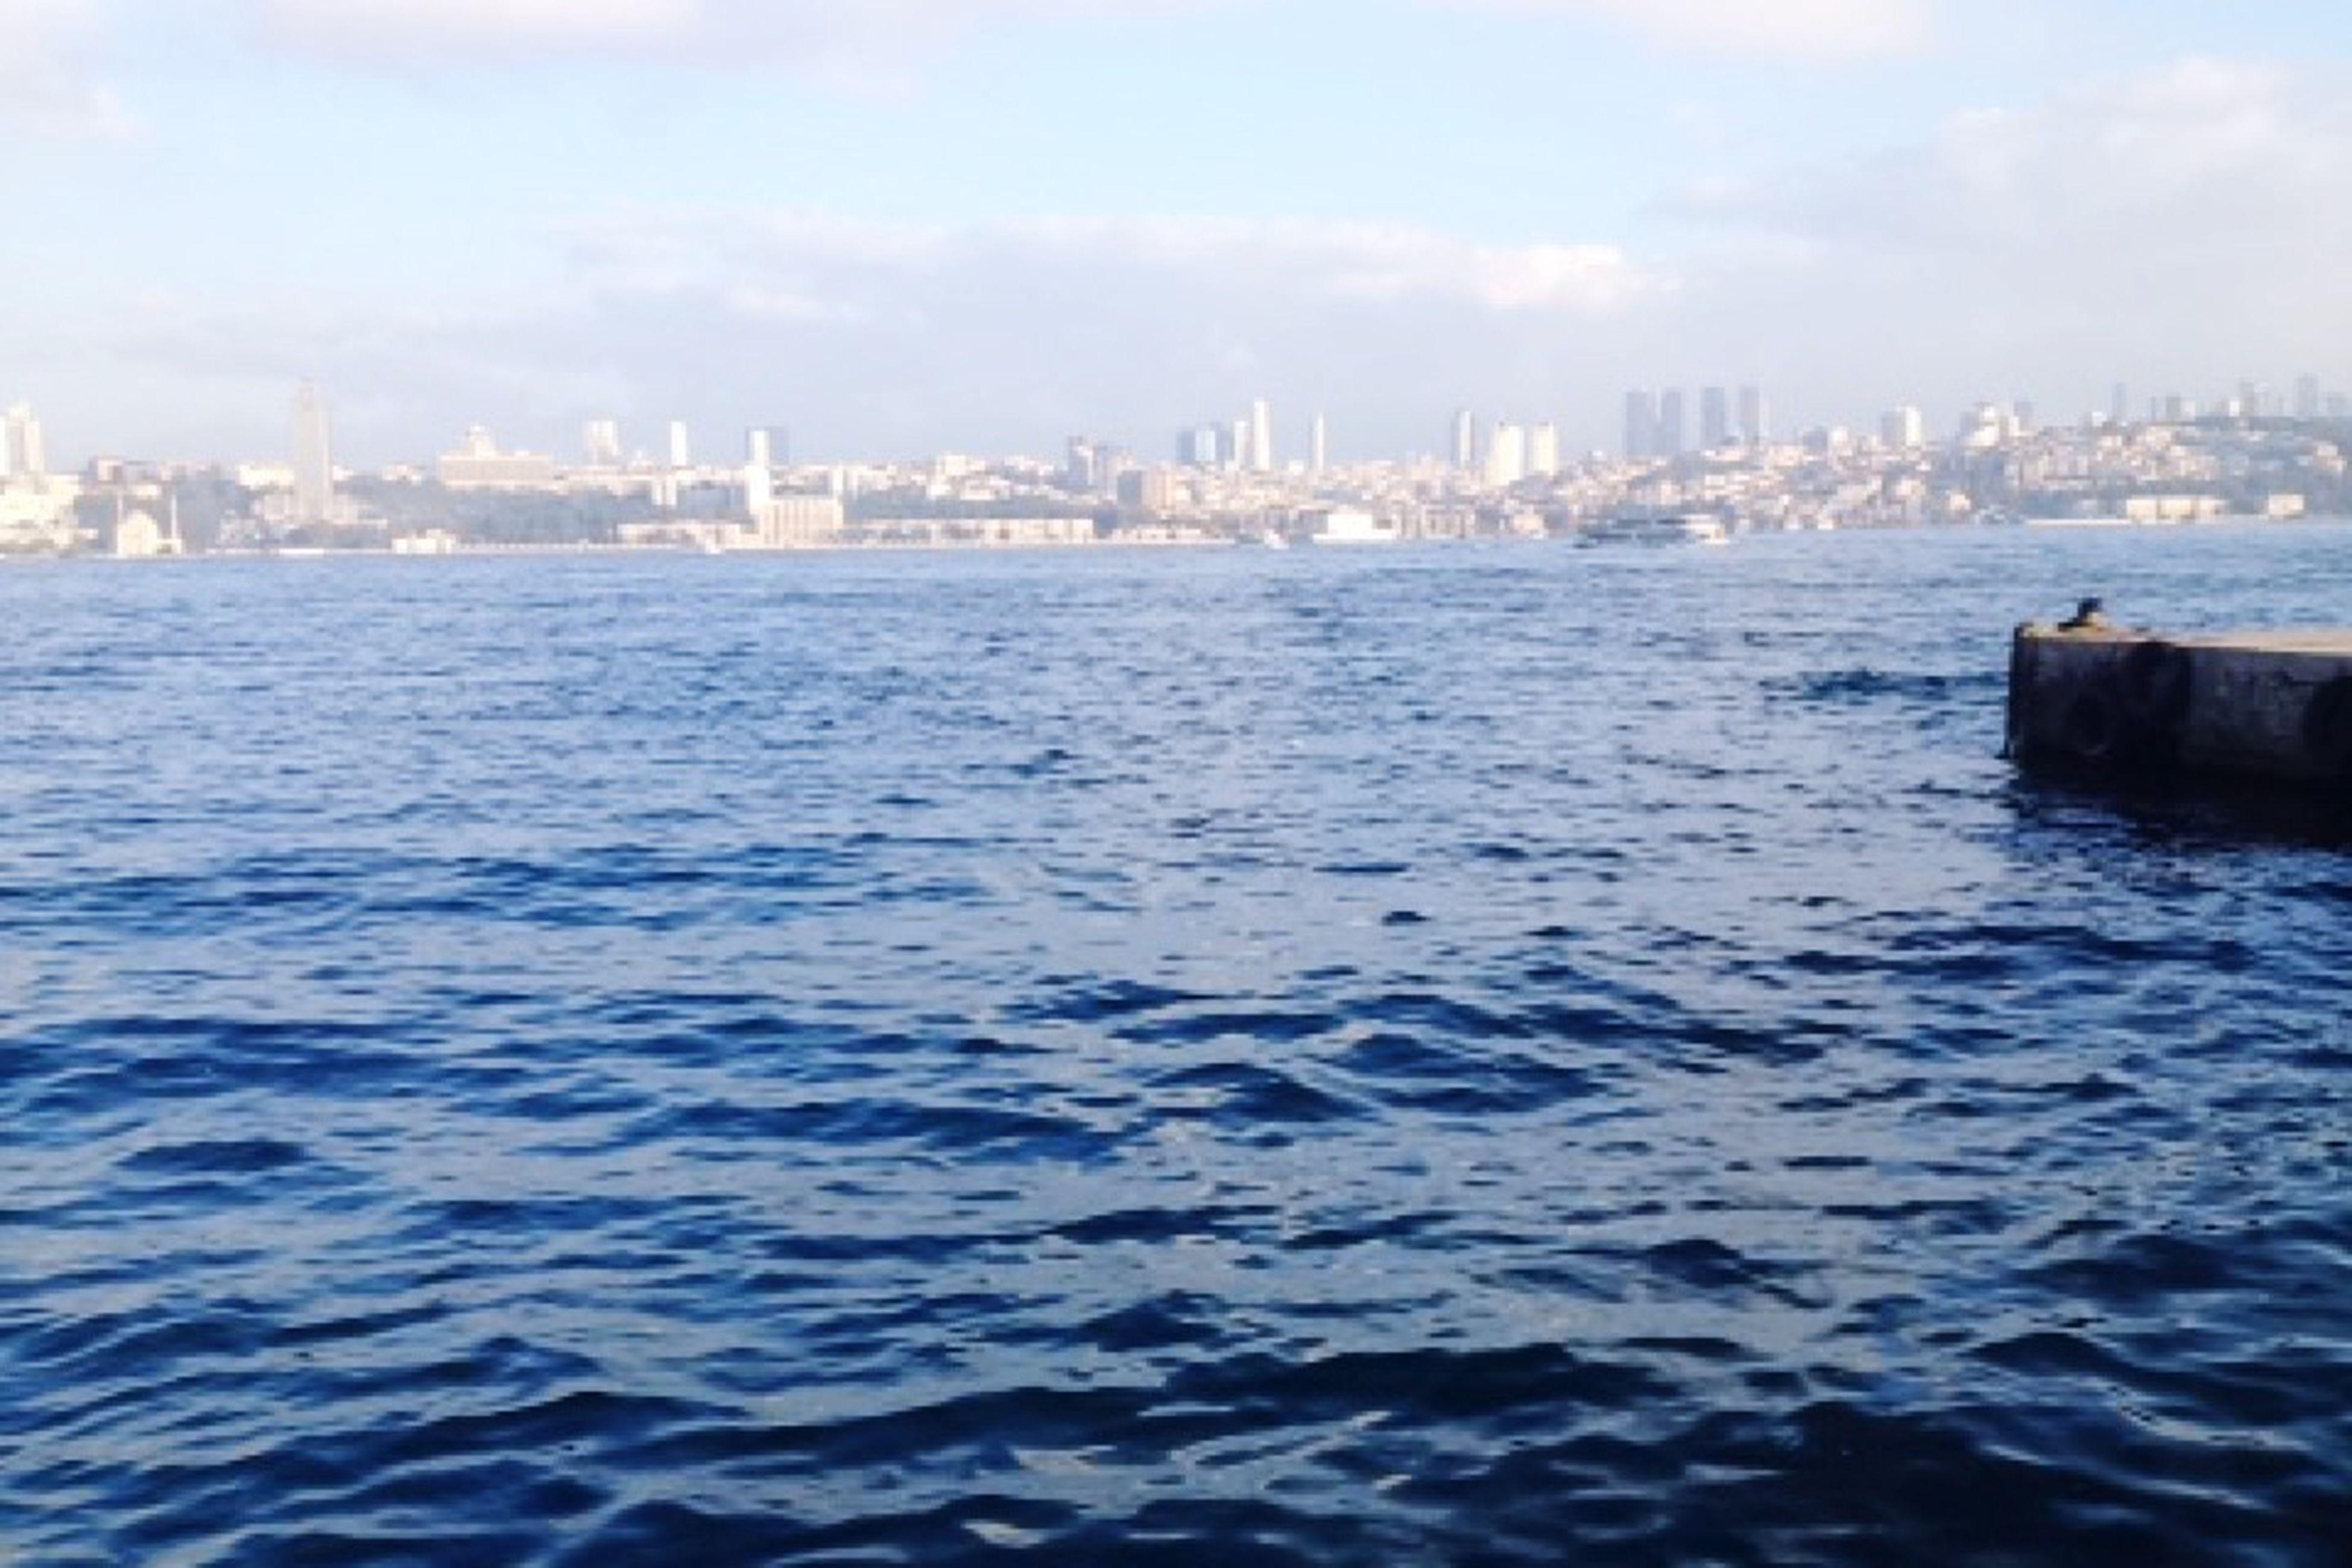 Sea Uskudar Istanbul Starting A Trip Gezivekitap http://youtu.be/of6bCgXALxM